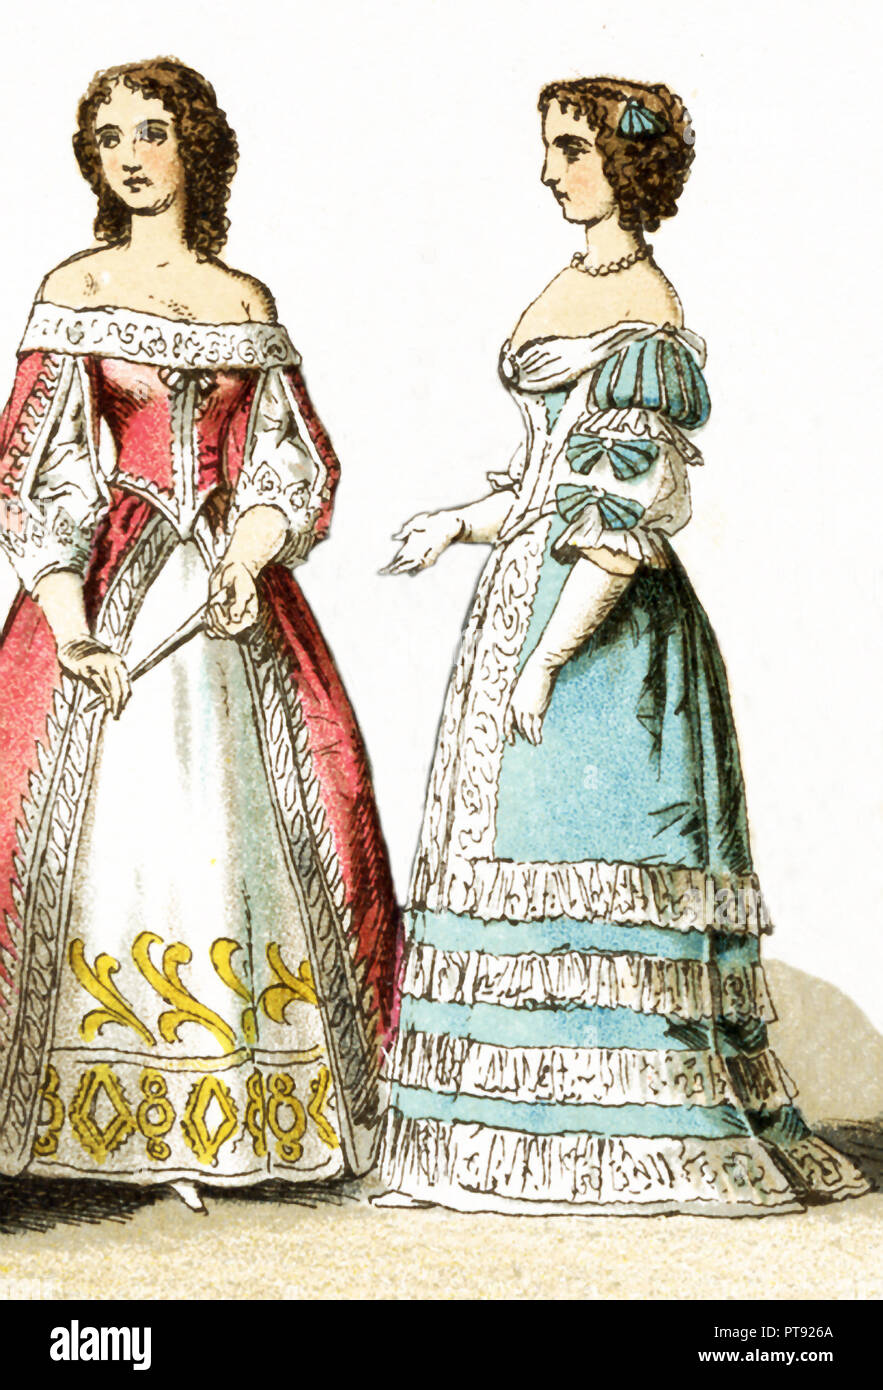 The Figures represented here are two French ladies of the court living in the 17th century, specifically between 1600 and 1670. The illustration dates to 1882. - Stock Image